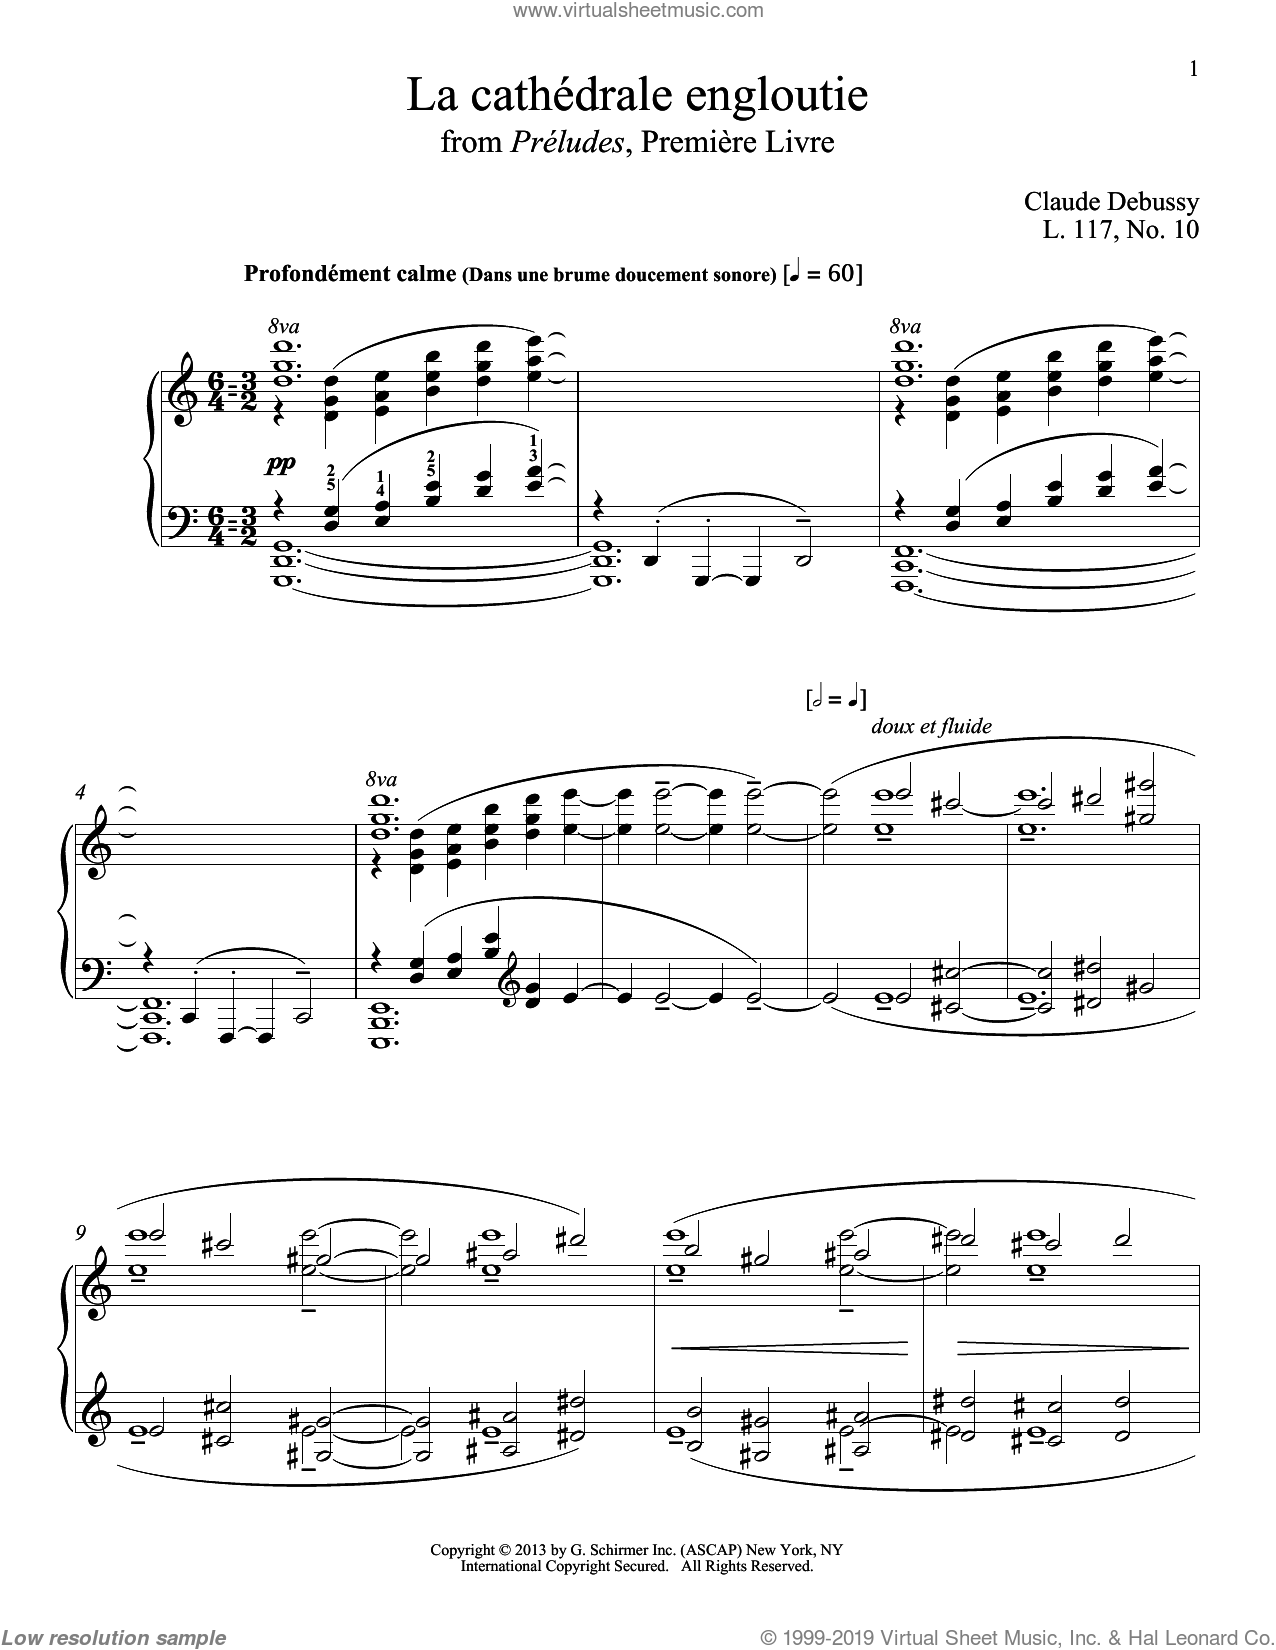 La Cathedrale Engloutie sheet music for piano solo by Claude Debussy and Christopher Harding, classical score, intermediate skill level